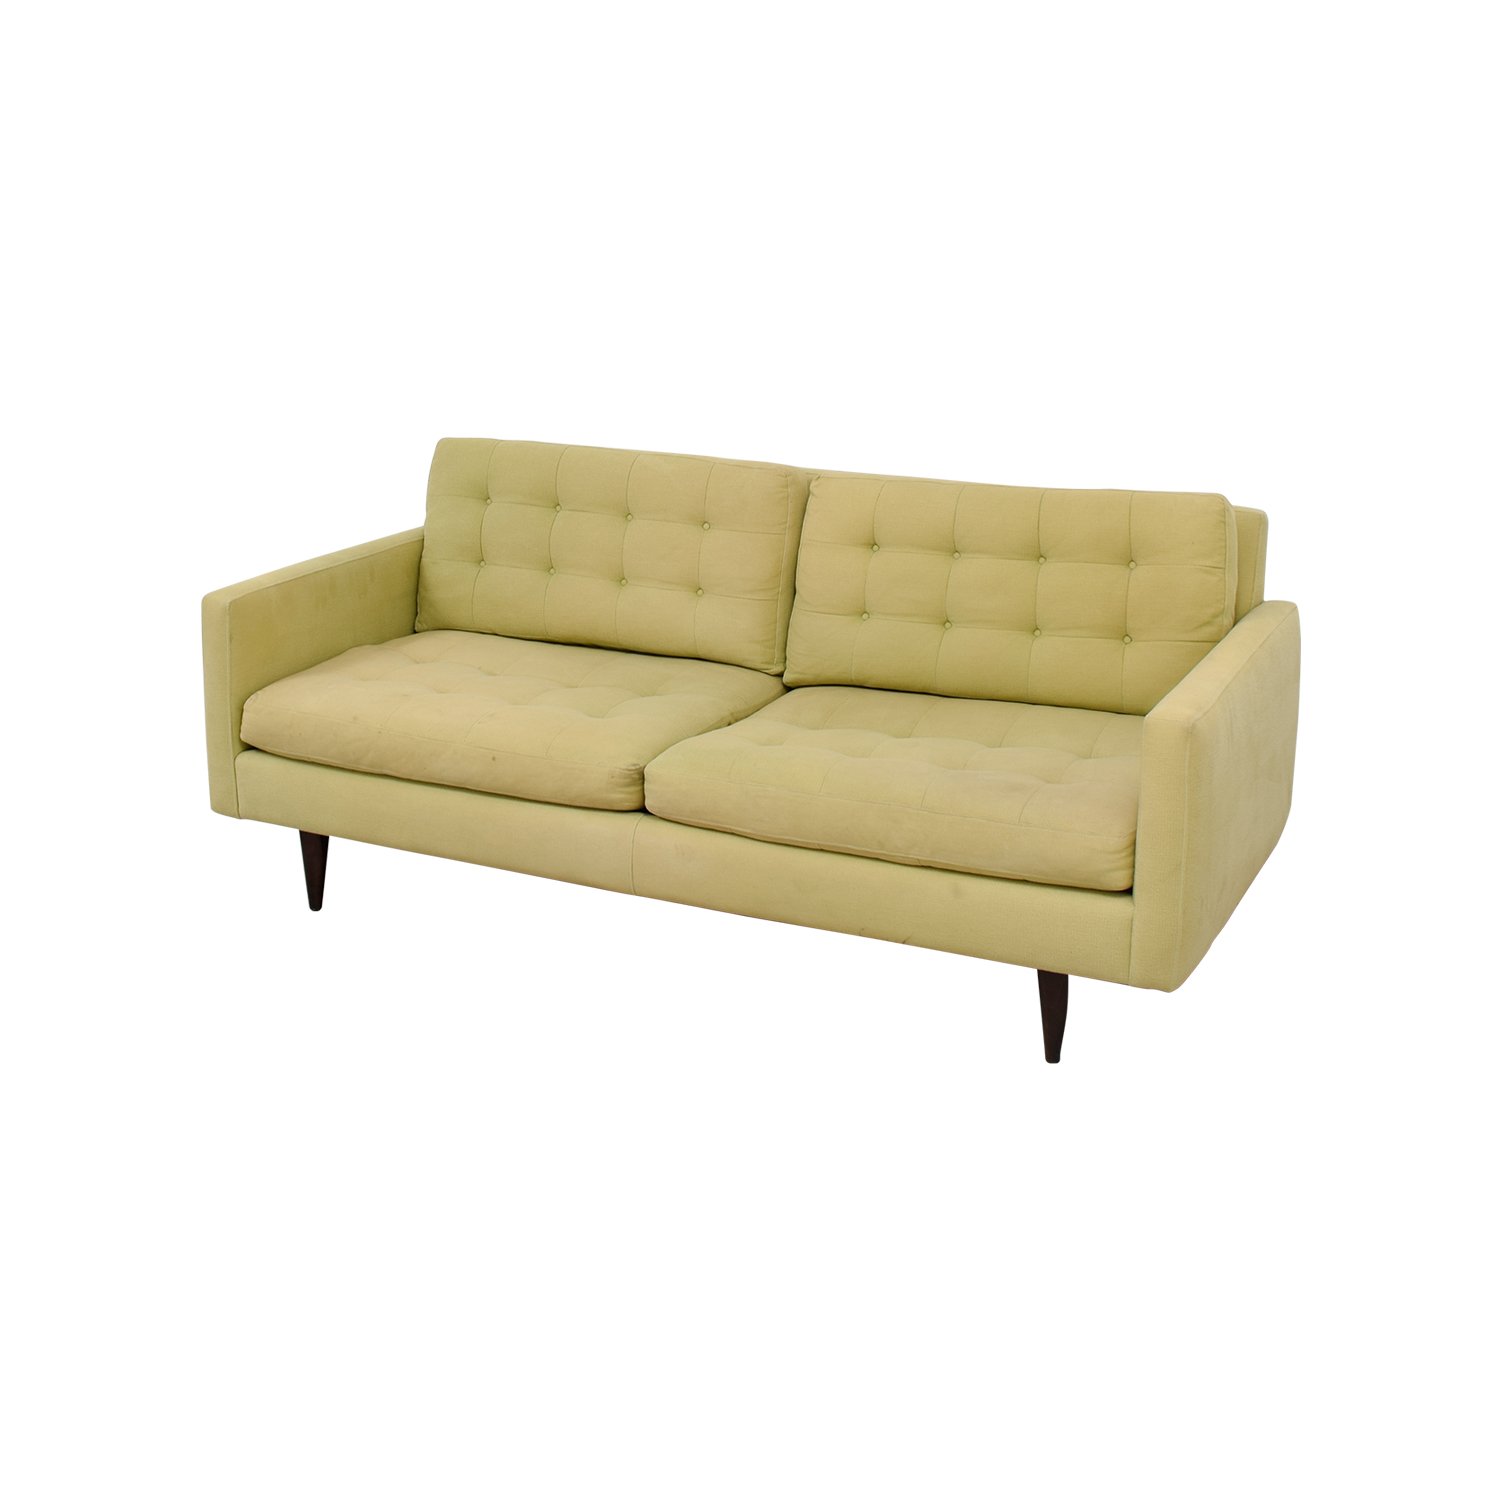 77 off crate barrel crate barrel petrie pale green tufted sofa sofas. Black Bedroom Furniture Sets. Home Design Ideas